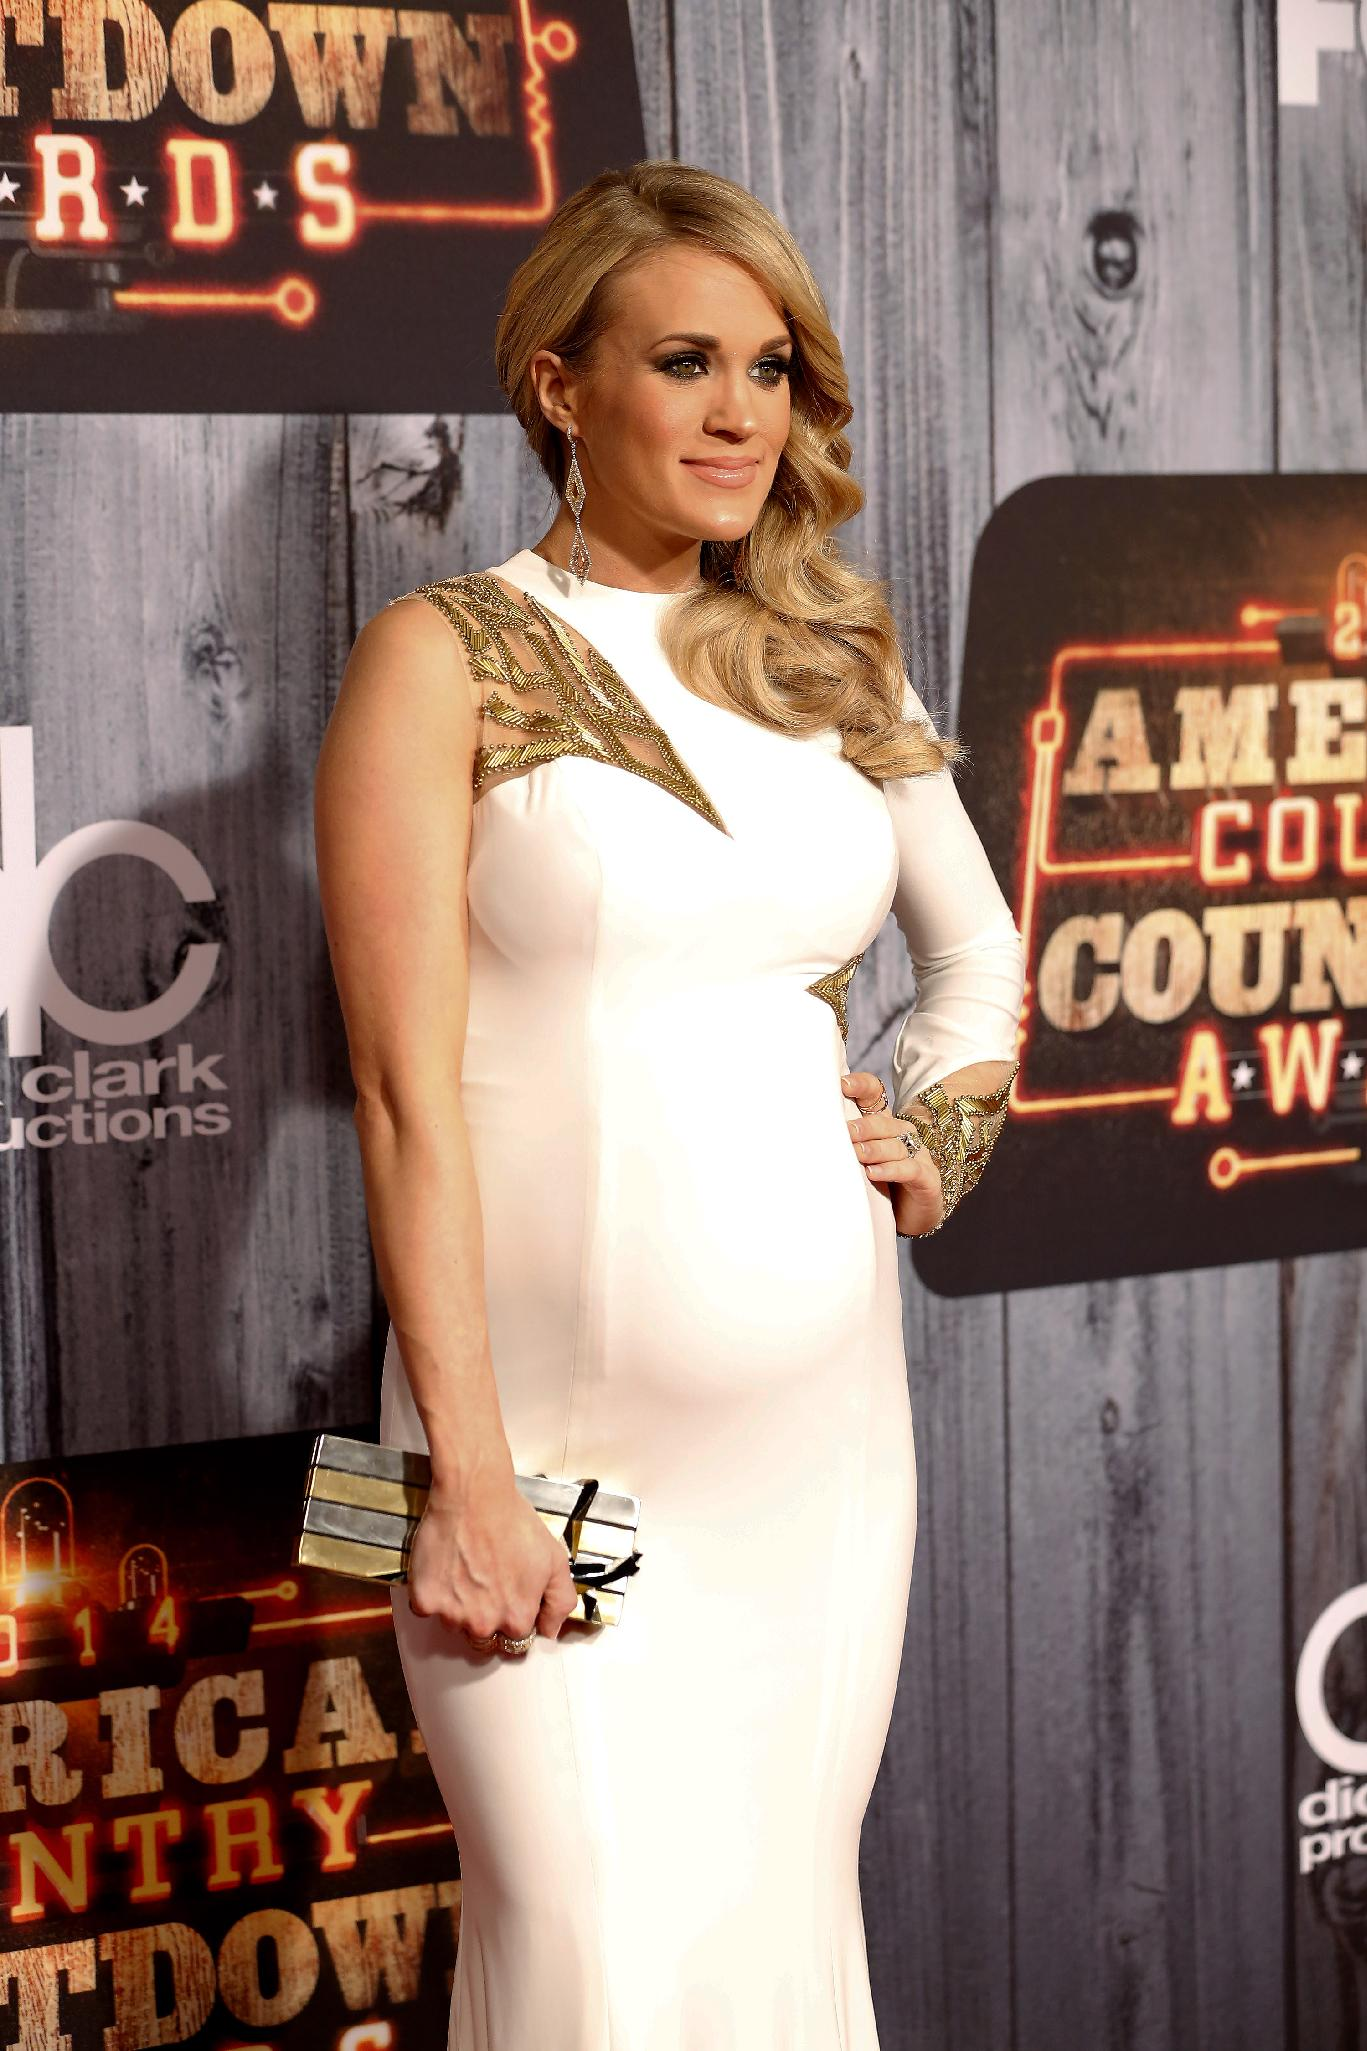 Carrie Underwood becomes a mom, gives birth to a boy